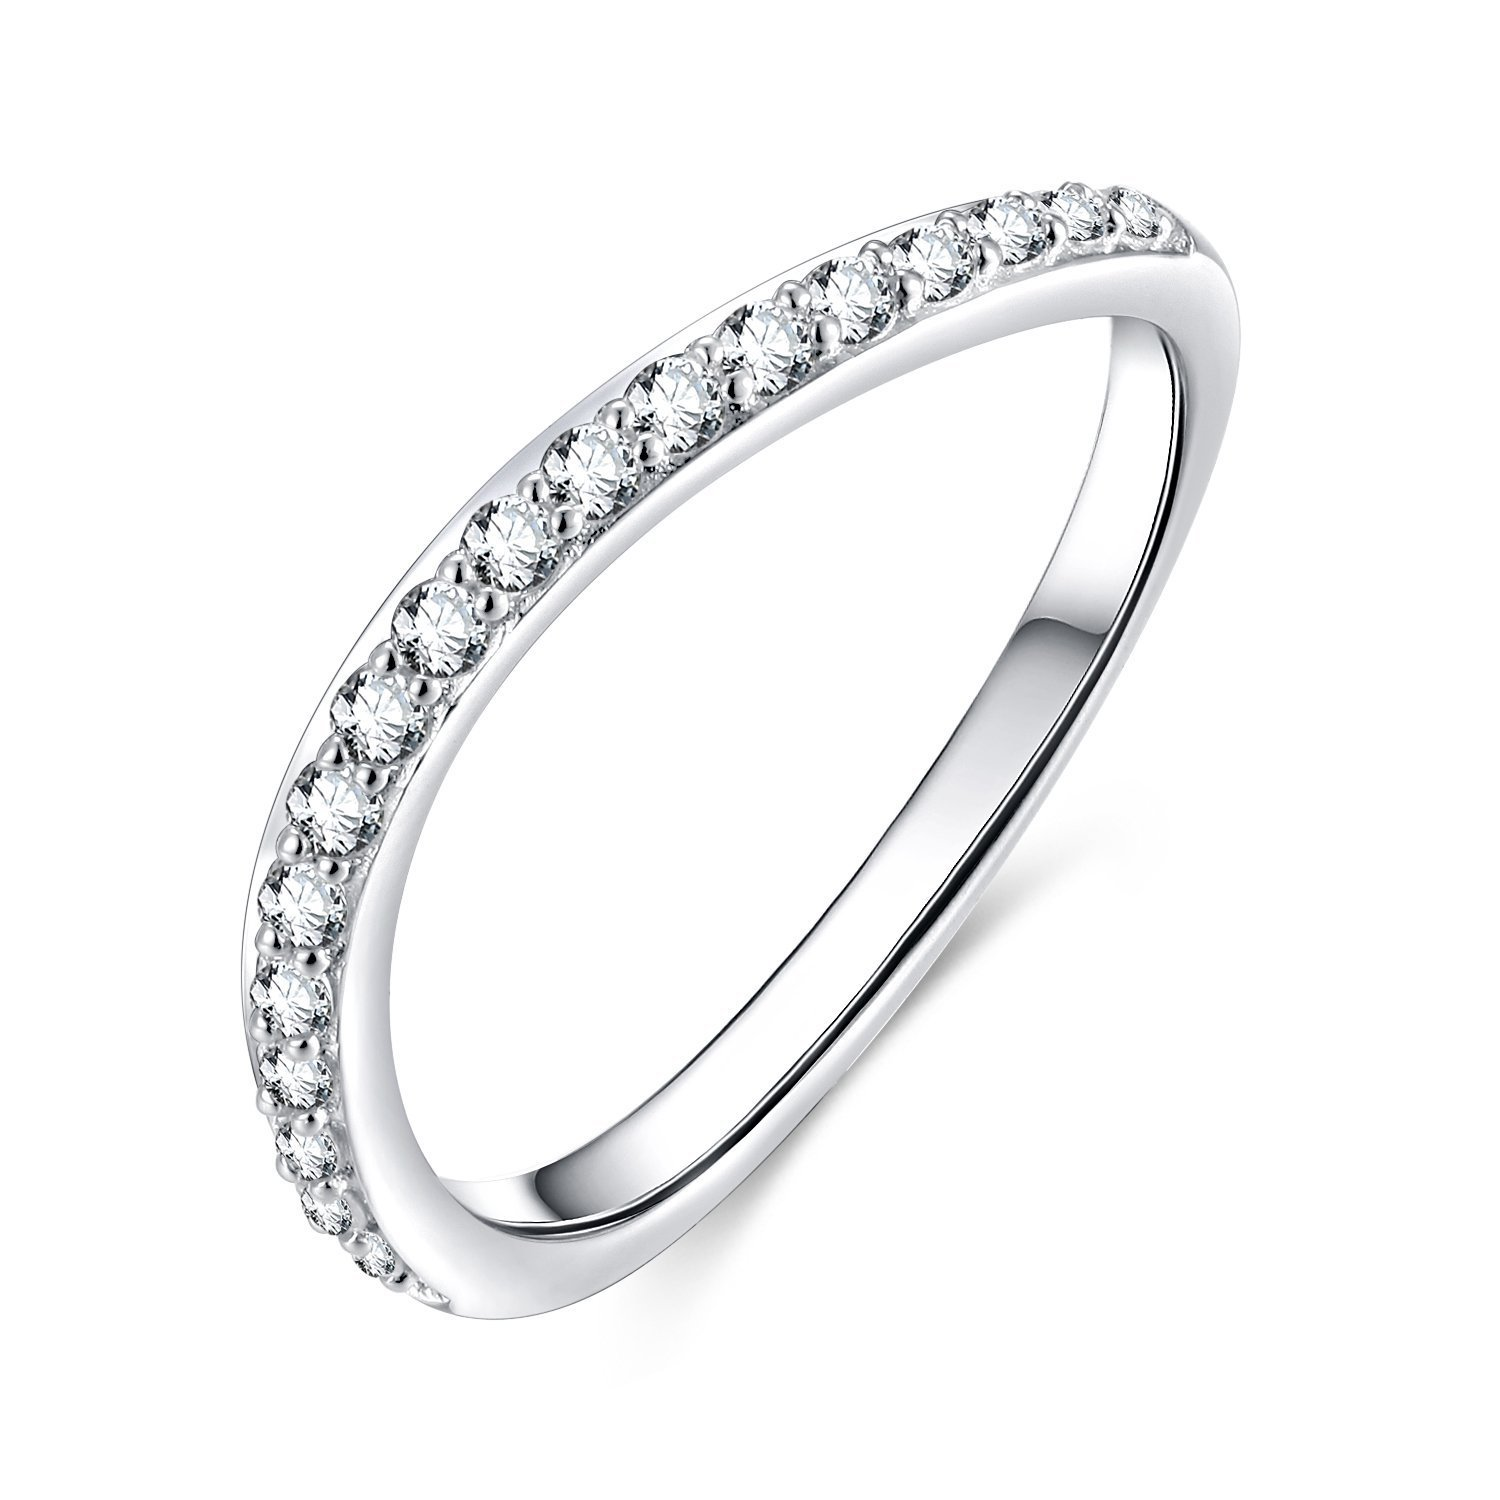 EAMTI Curved Half Eternity Wedding Band Cubic Zirconia CZ 925 Sterling Silver Ring Size 8